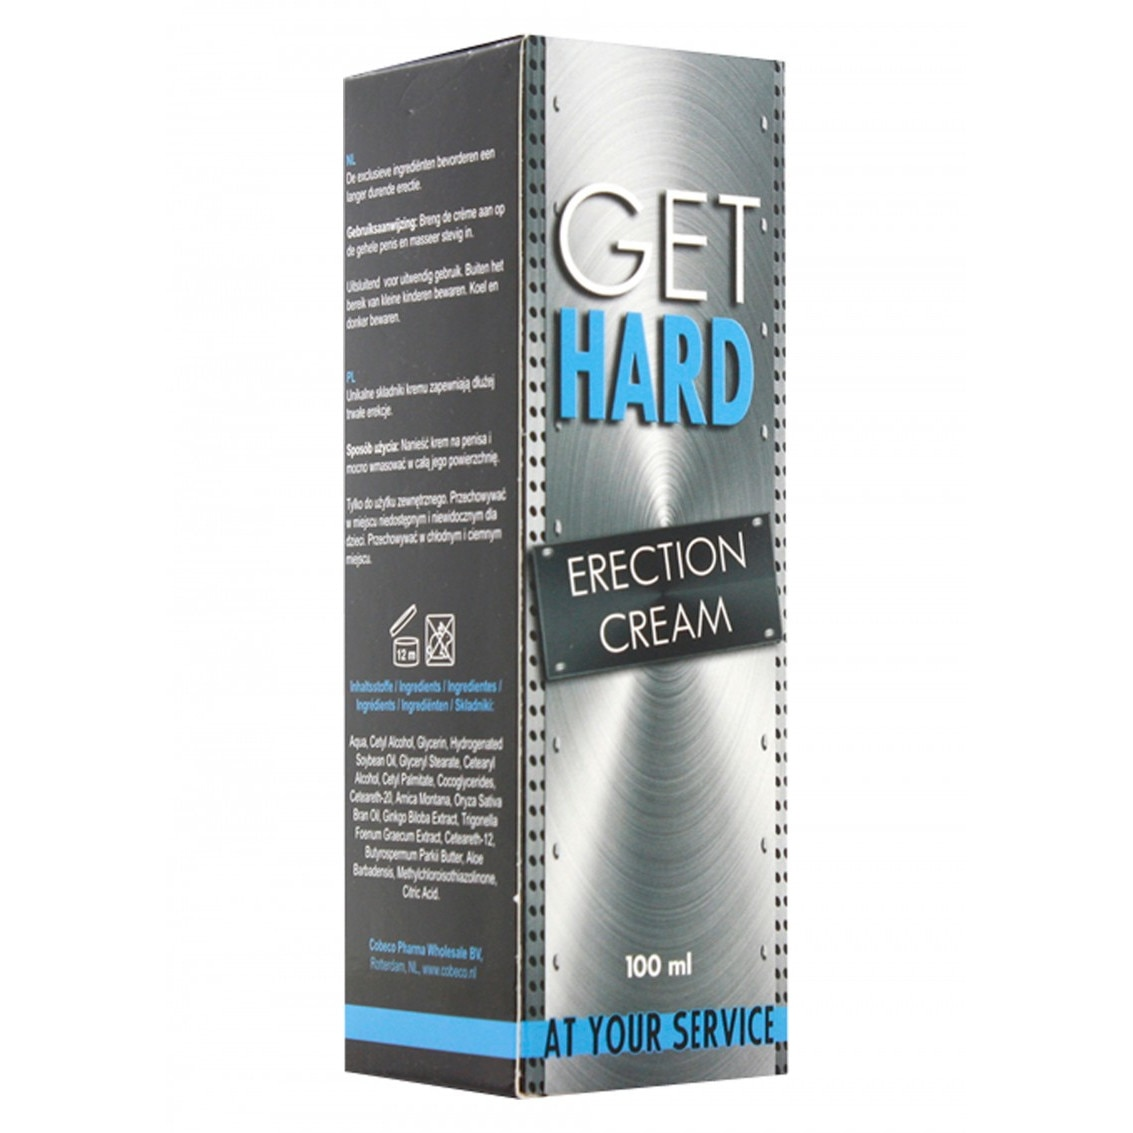 Penis XL Erection Cream – Crema pentru Erectie, 50 ml